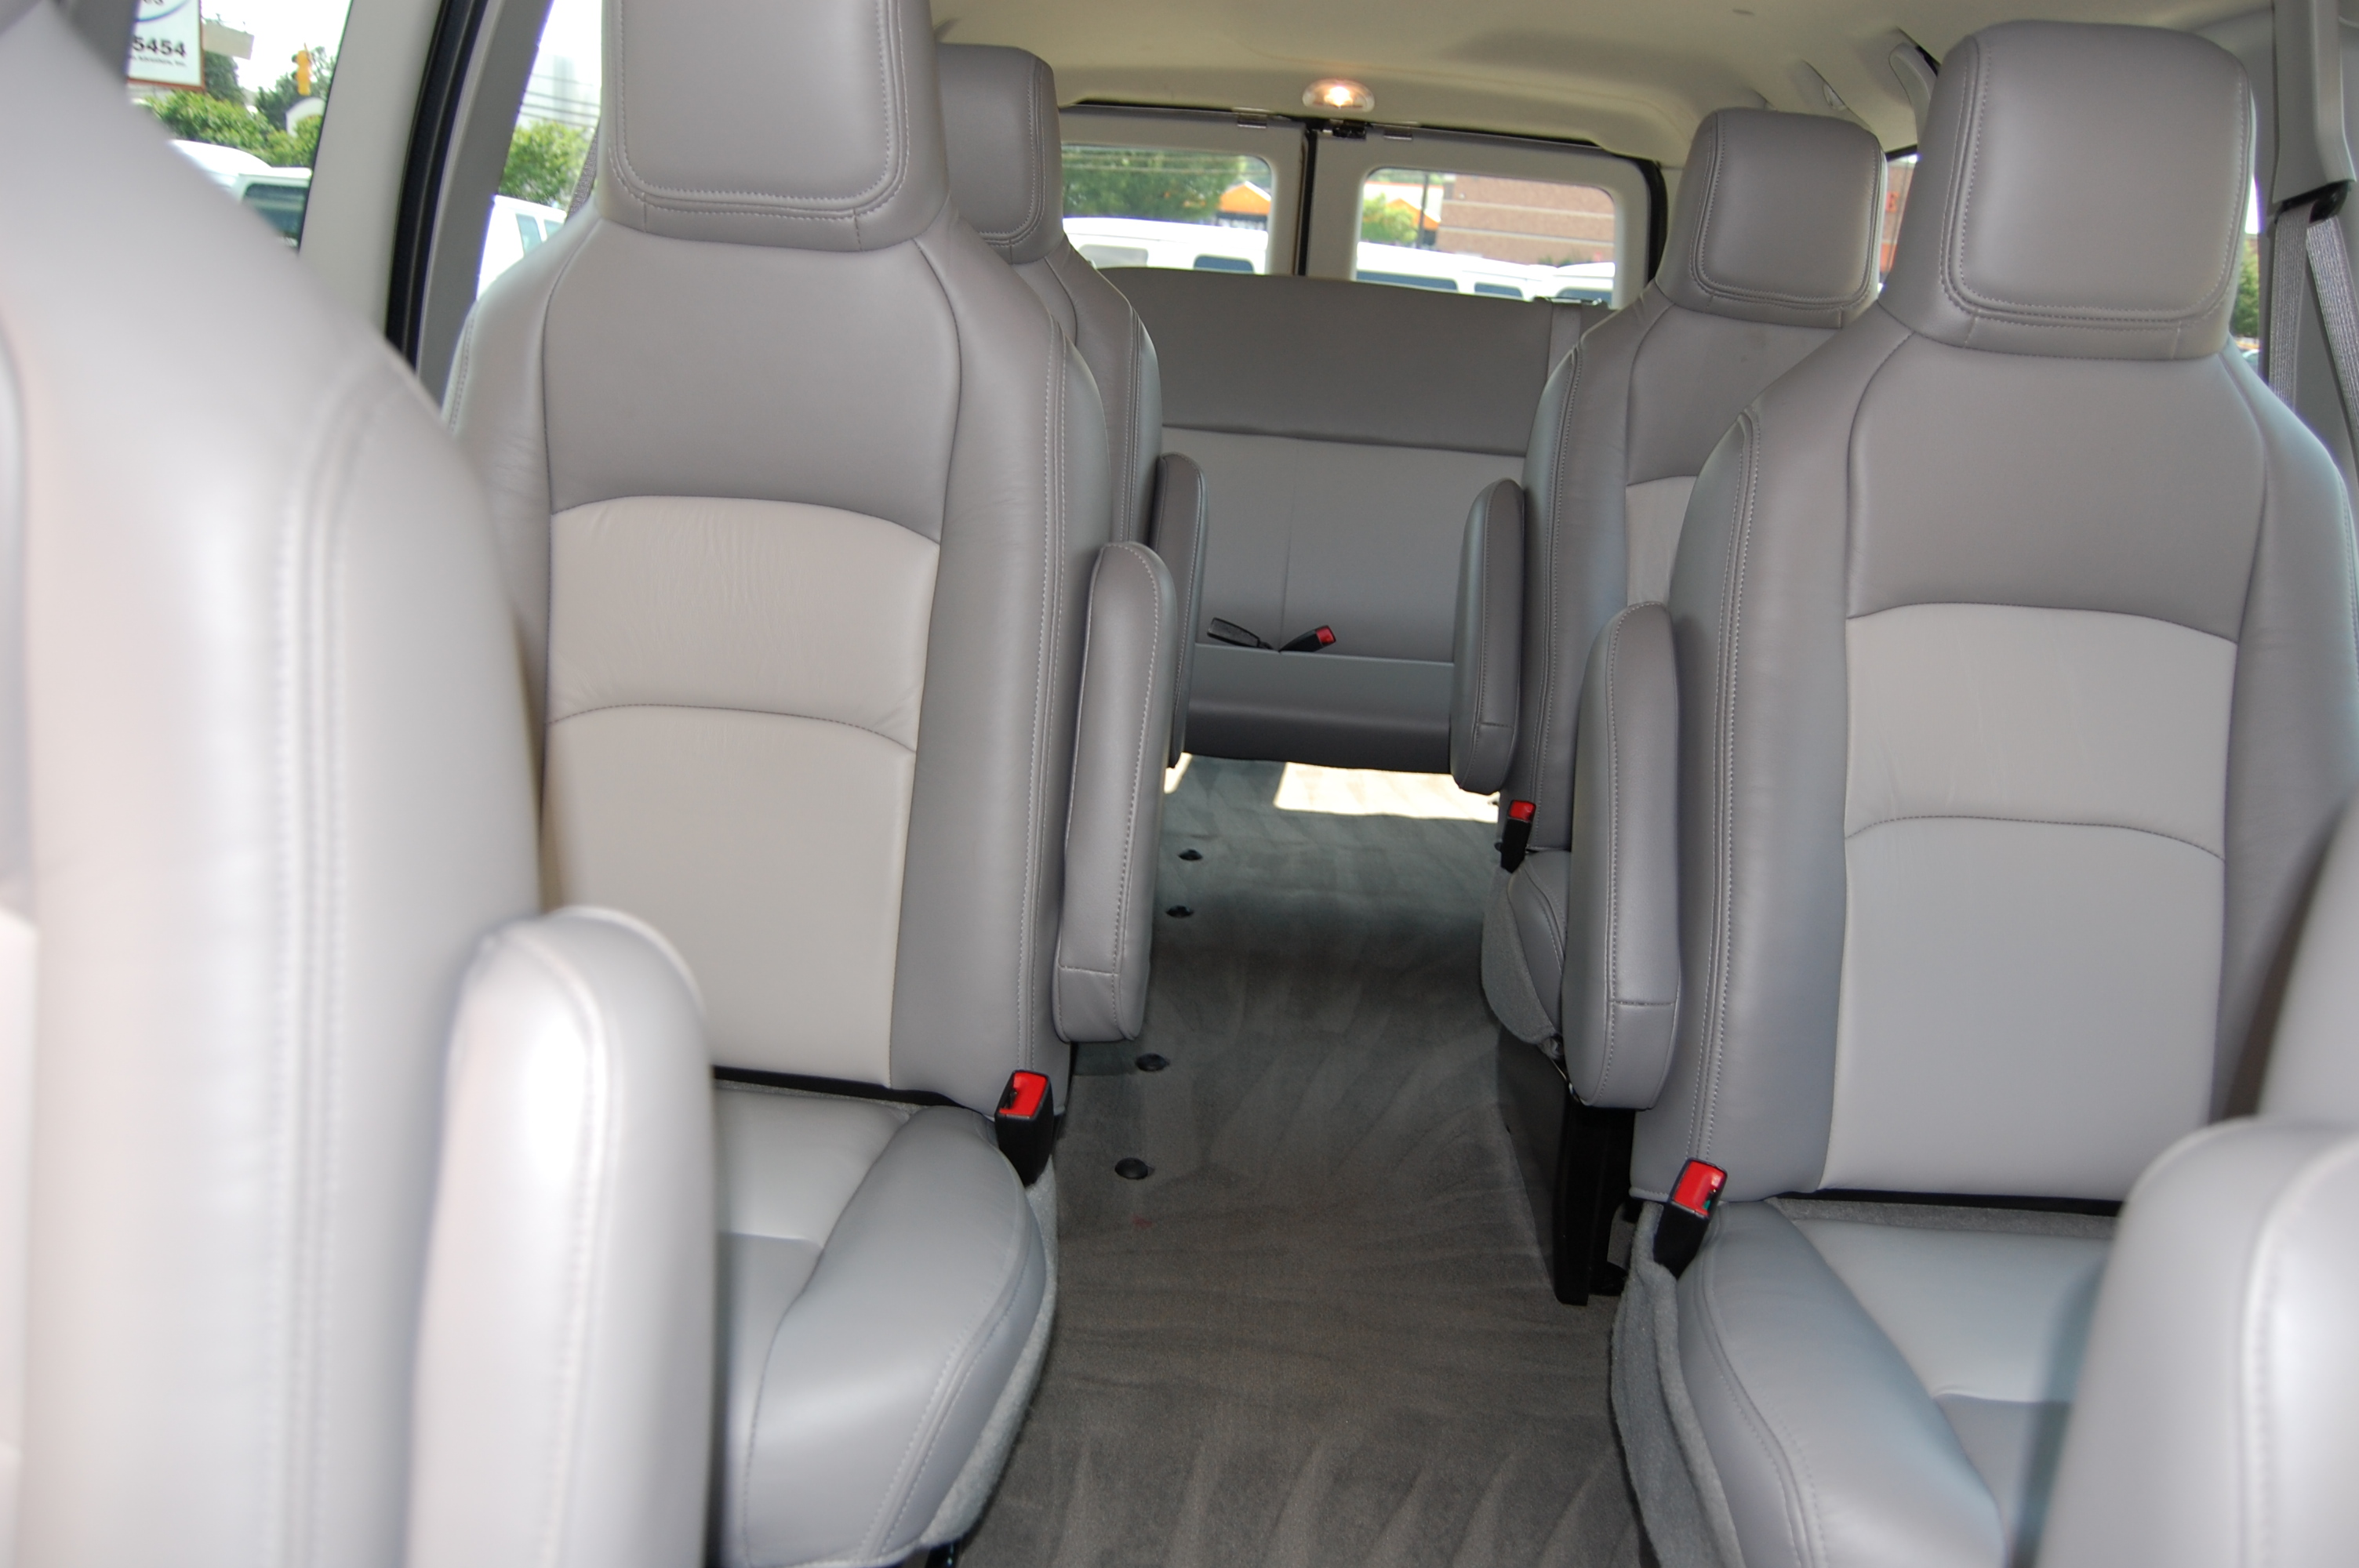 chairs for handicapped office staples canada 10 passenger vans